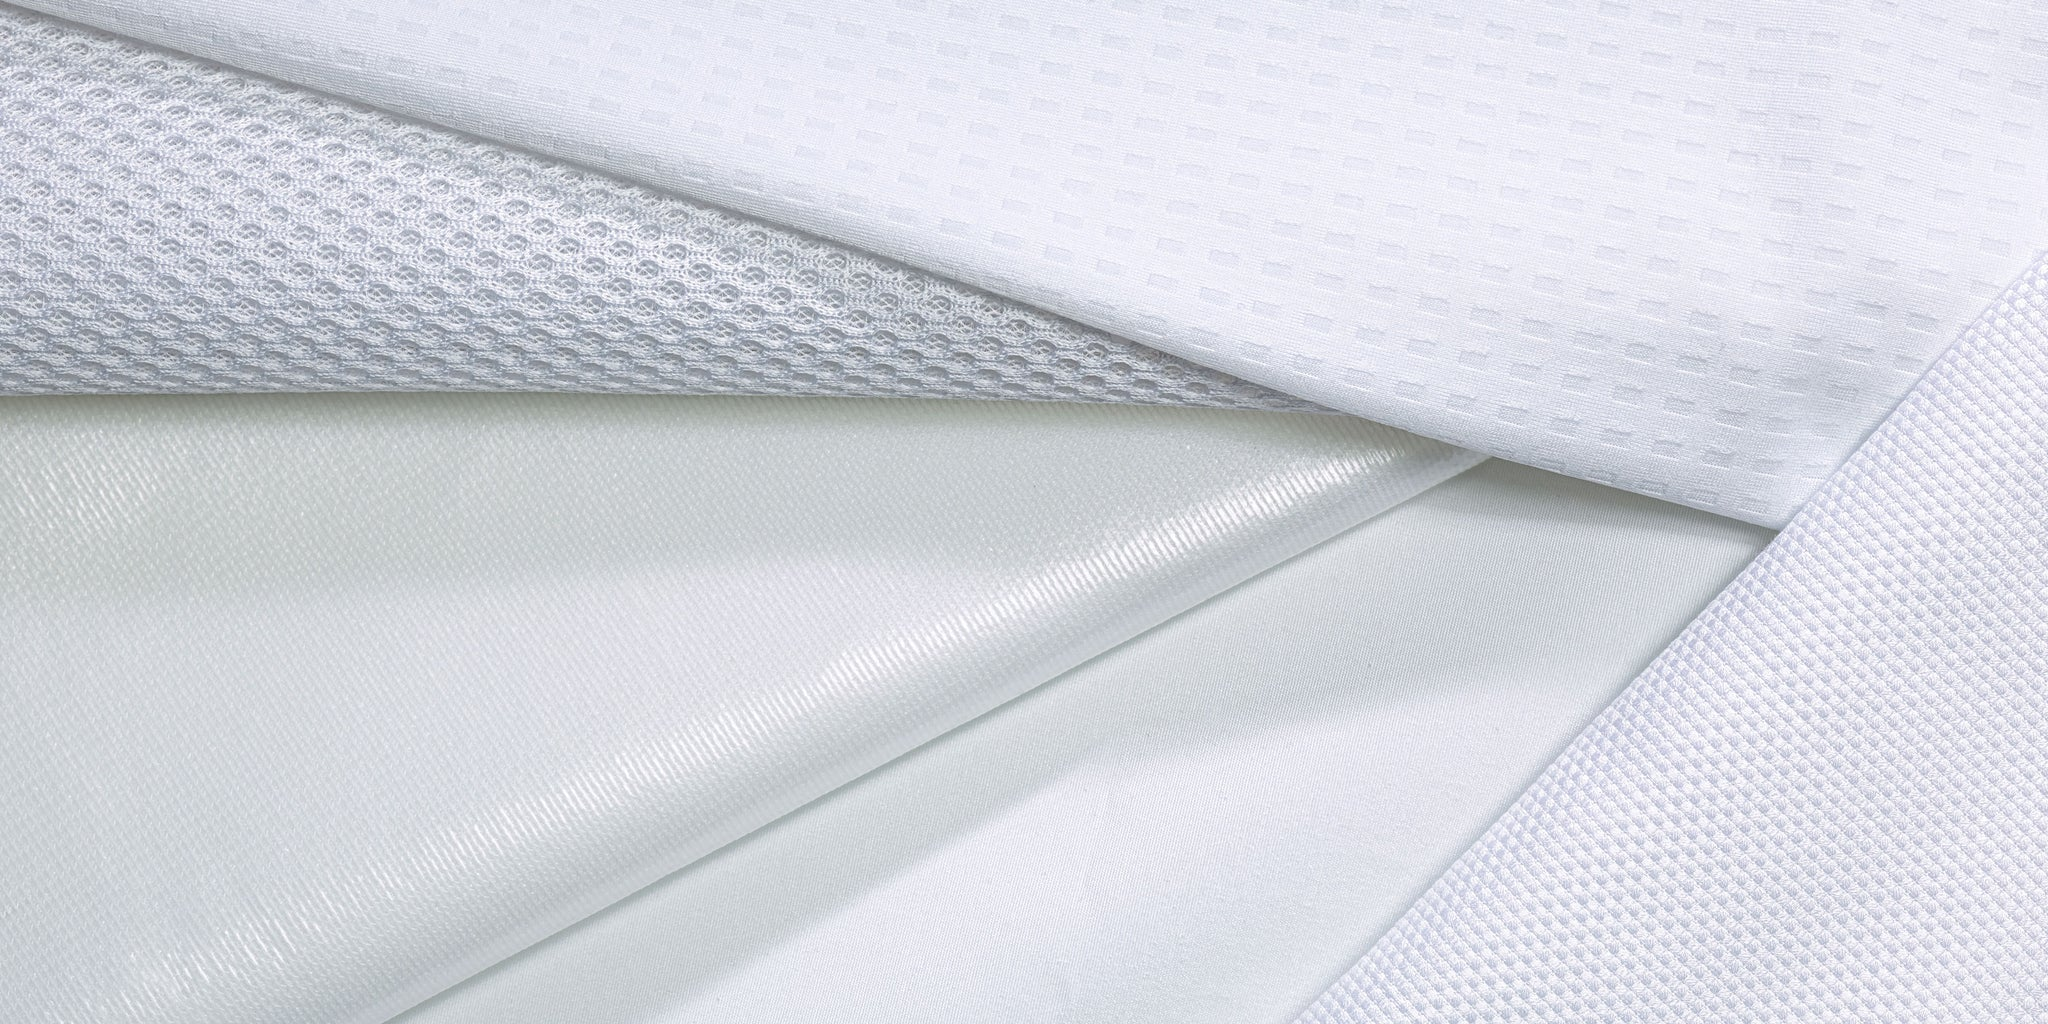 KateKlein Clean Pillow Innovative Fabrics